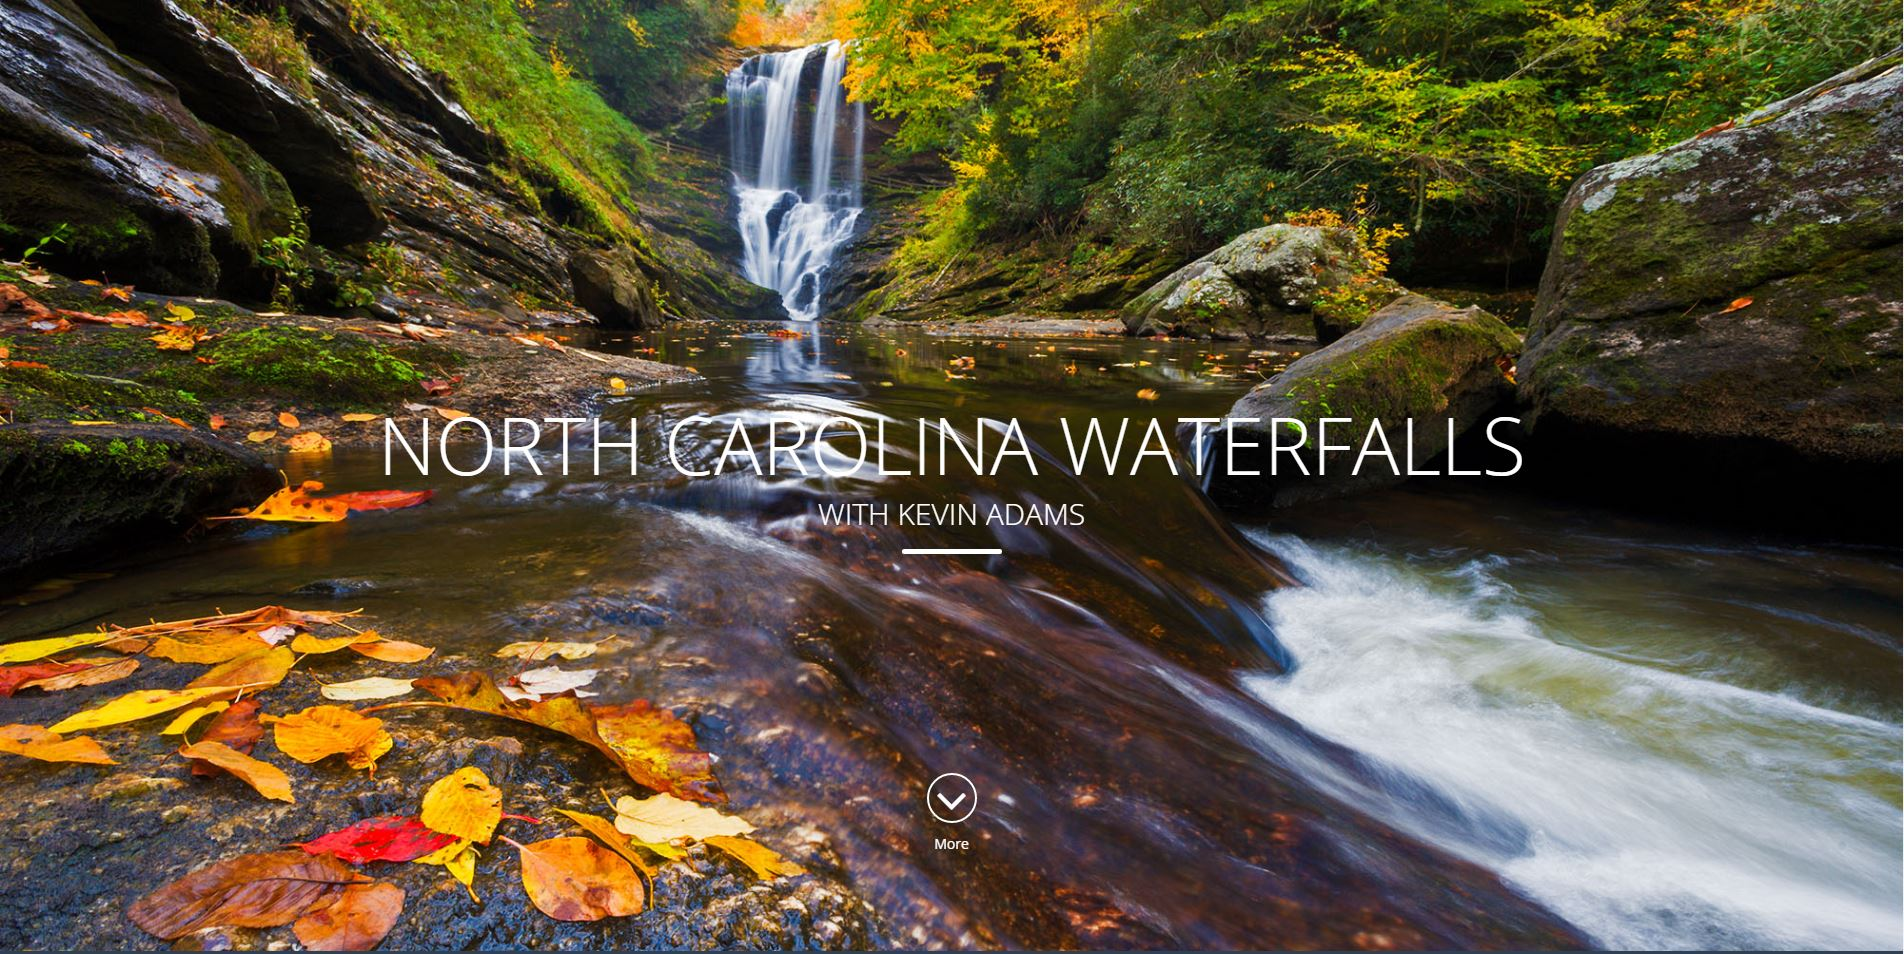 North Carolina Waterfalls - Home